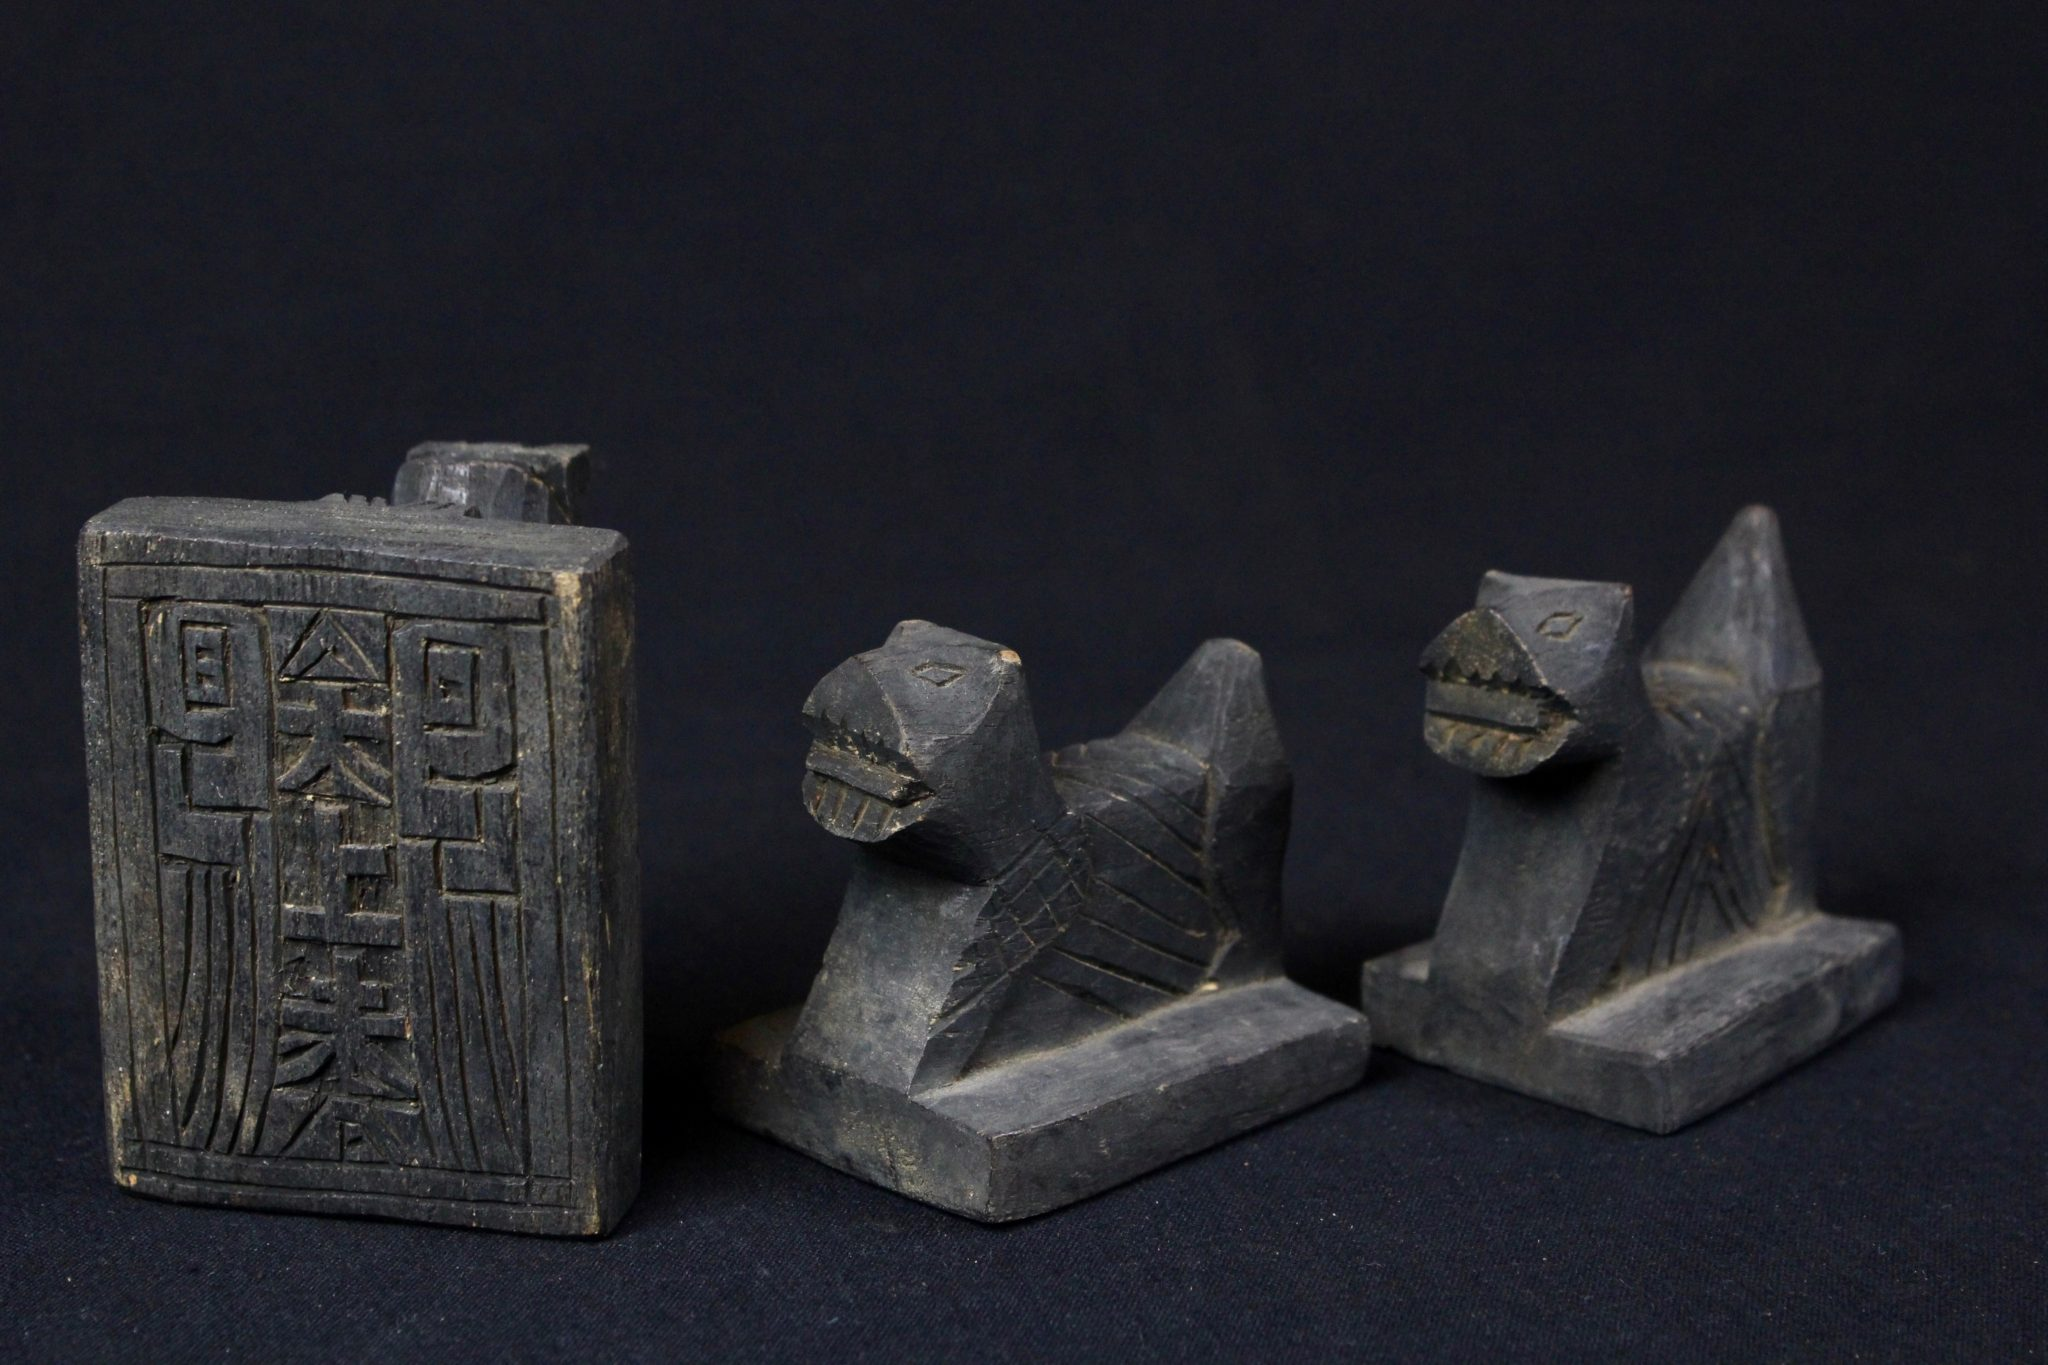 """Shaman's Stamp 'Chop', Northern Thailand, Mid to late 20th c, Wood, pigment, Important tool for a shaman. They are unique to a particular shaman and used as a mark of authenticity. They would be placed on a message from one shaman to another, to the deities or into the shaman's book. $50./$60. each, Dimensions left to right: (left -2 ¾"""" x 2 ¼"""" x 3 ½"""", $60.); (middle - 2 ¾"""" x 2"""" x 2 ¾"""", $50.); (right - 2 ¾"""" x 1 ¾"""" x 2 ¾"""", $50.)"""